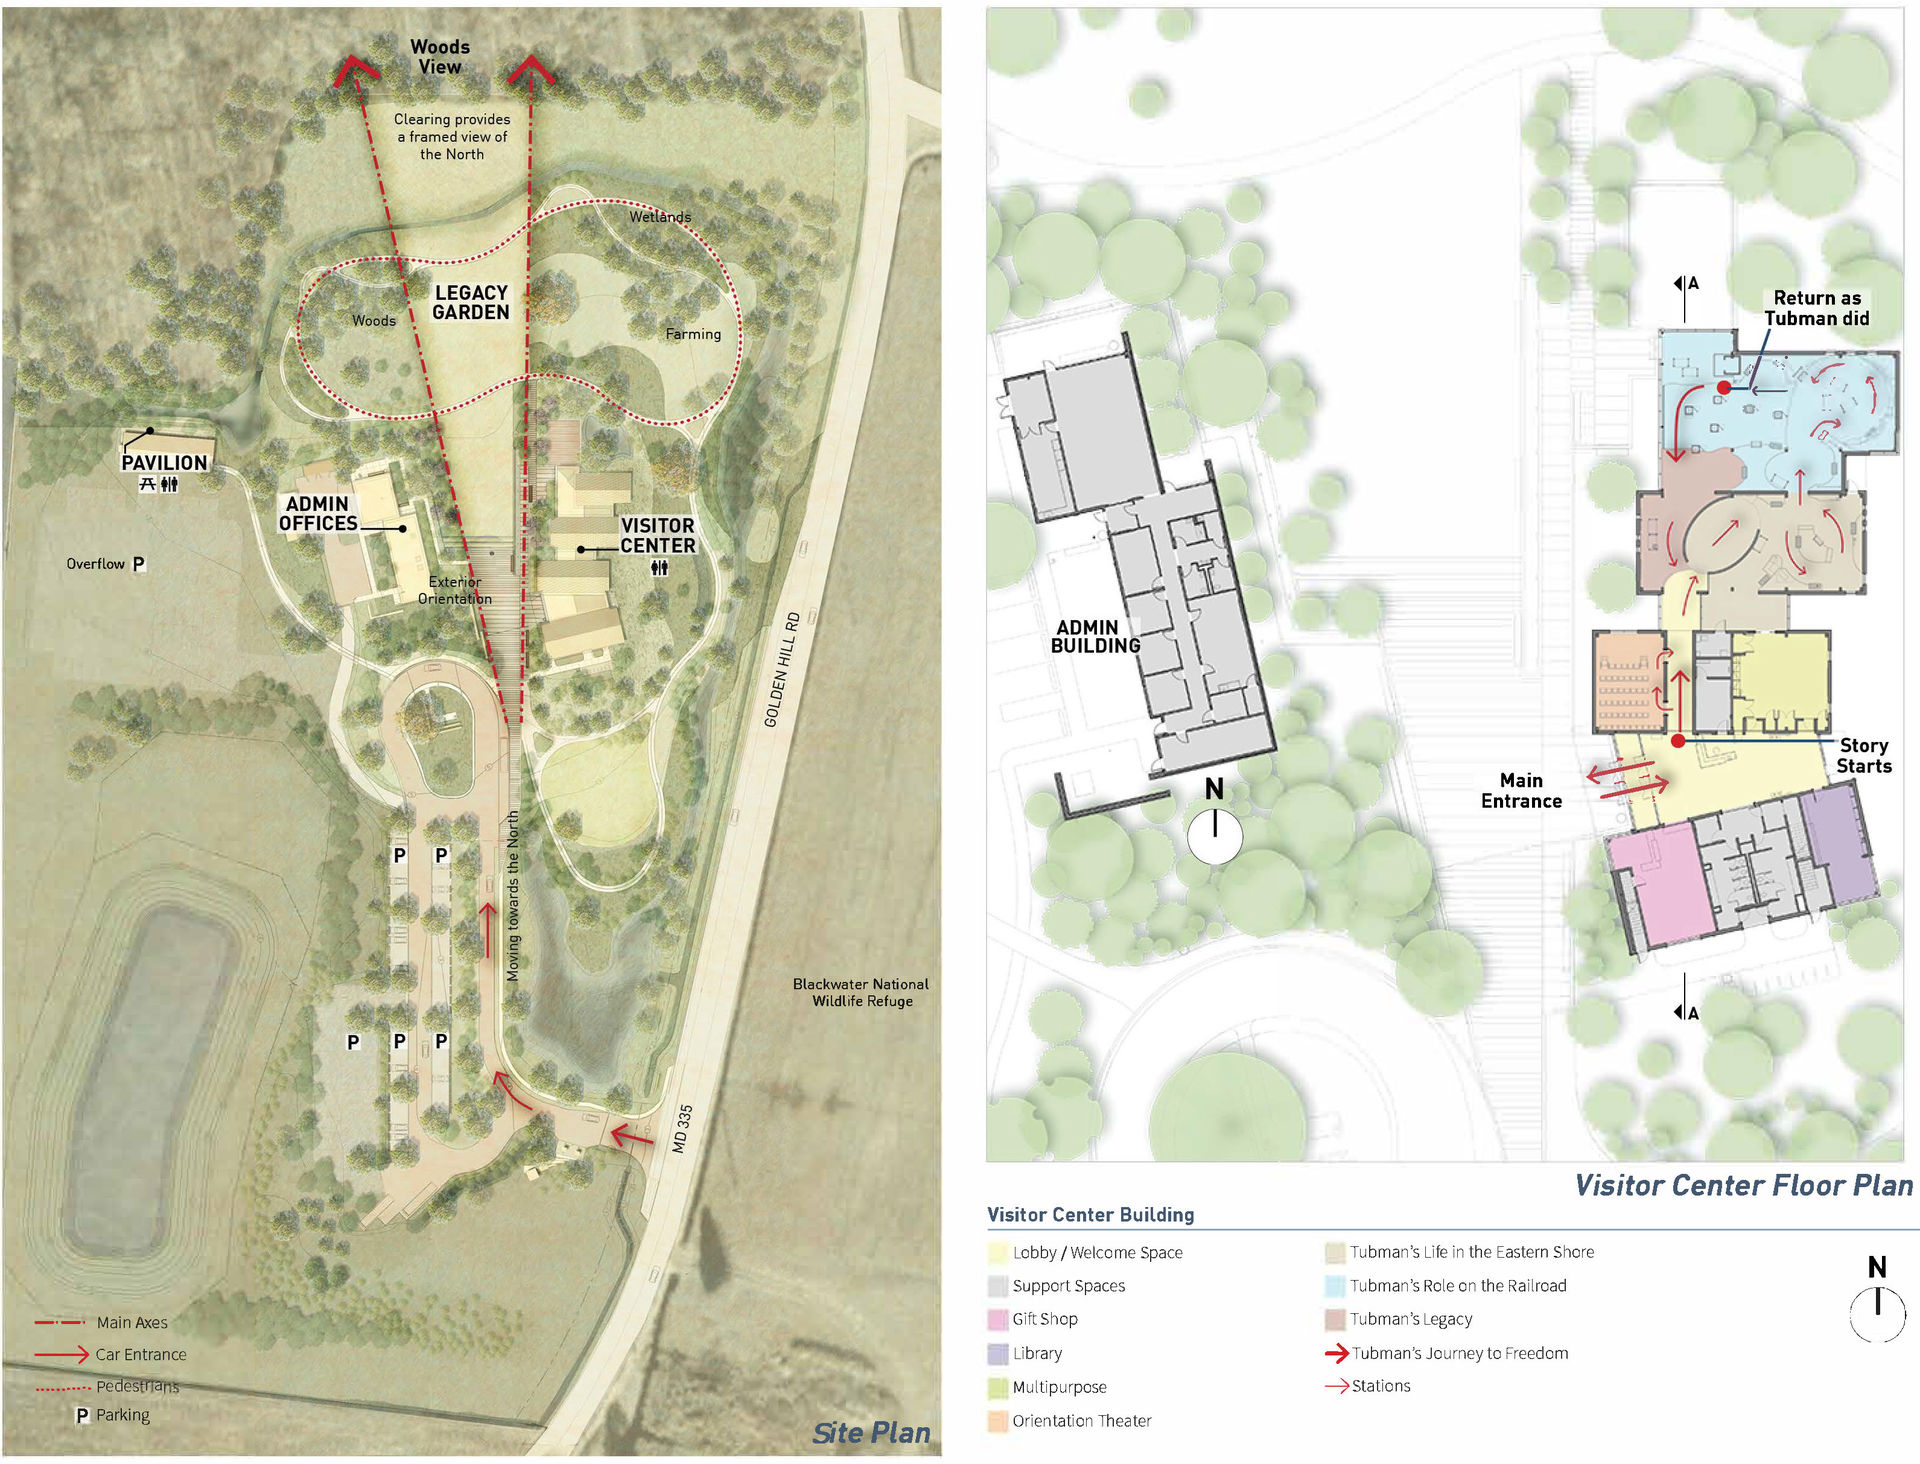 A site plan illustrates the two structures of the complex framing the view north and the pathways visitors can take within the memorial garden.